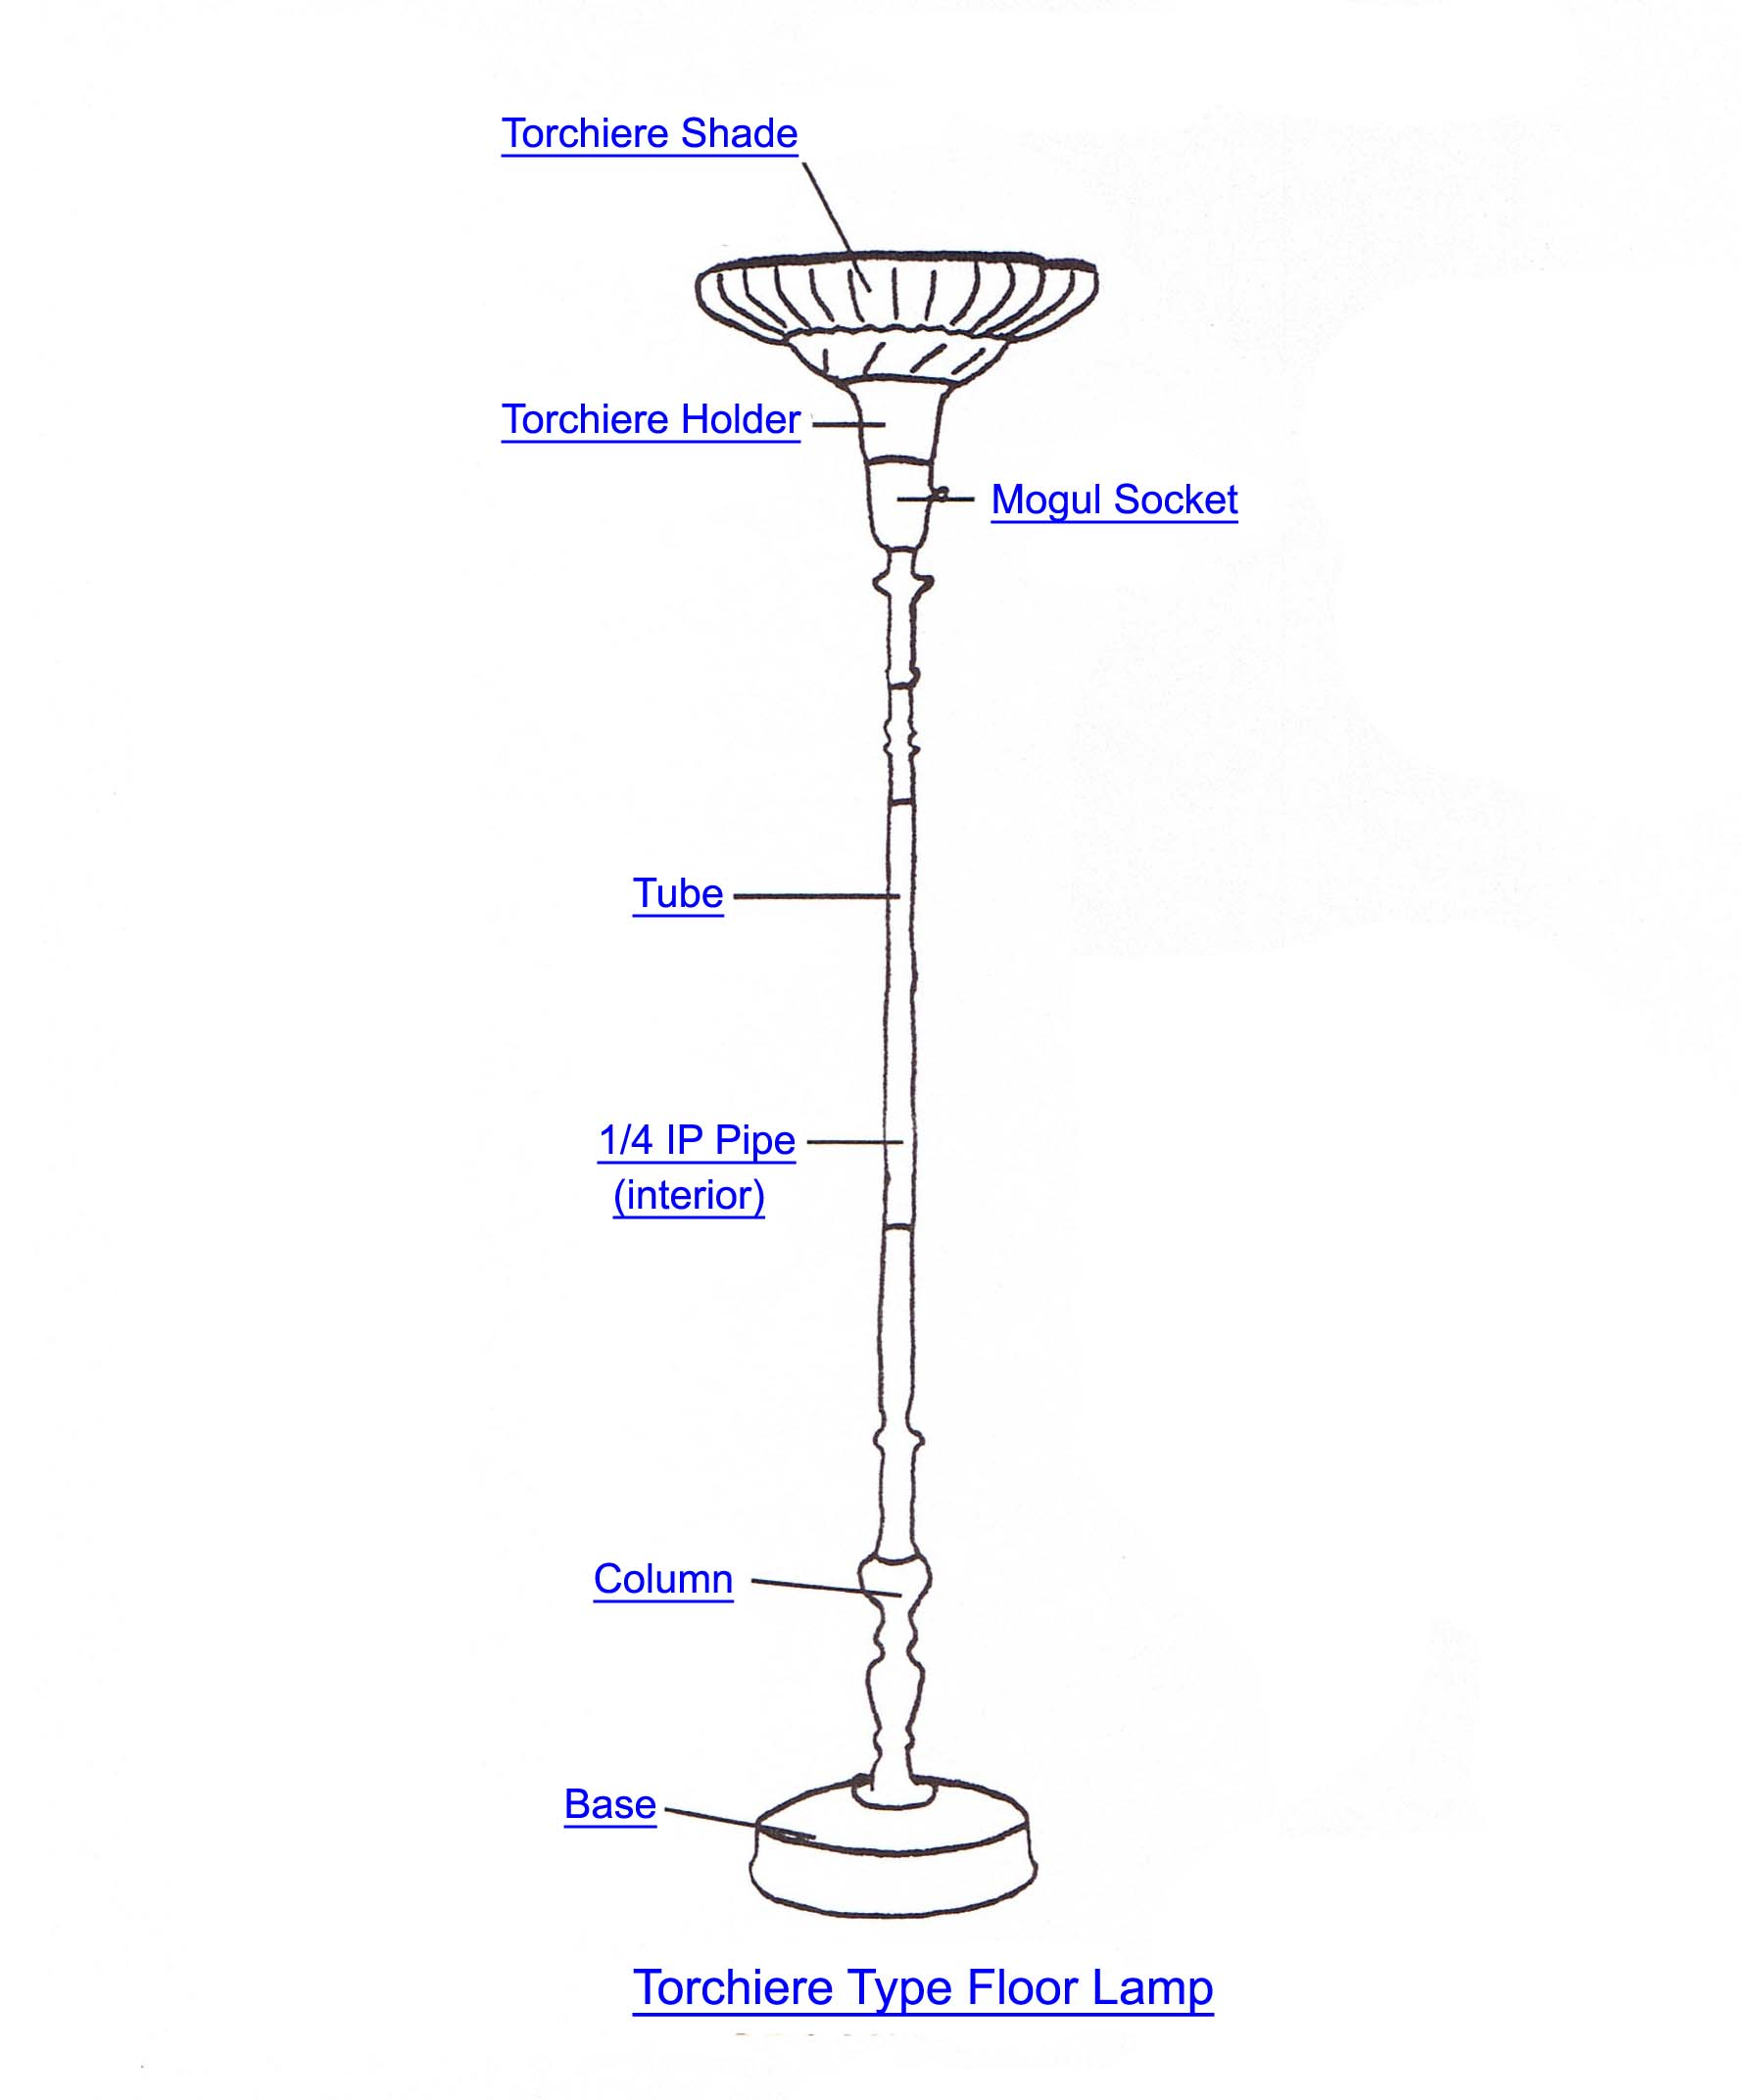 hight resolution of torchiere lamp part index galee style lamp parts diagram lamp parts diagram